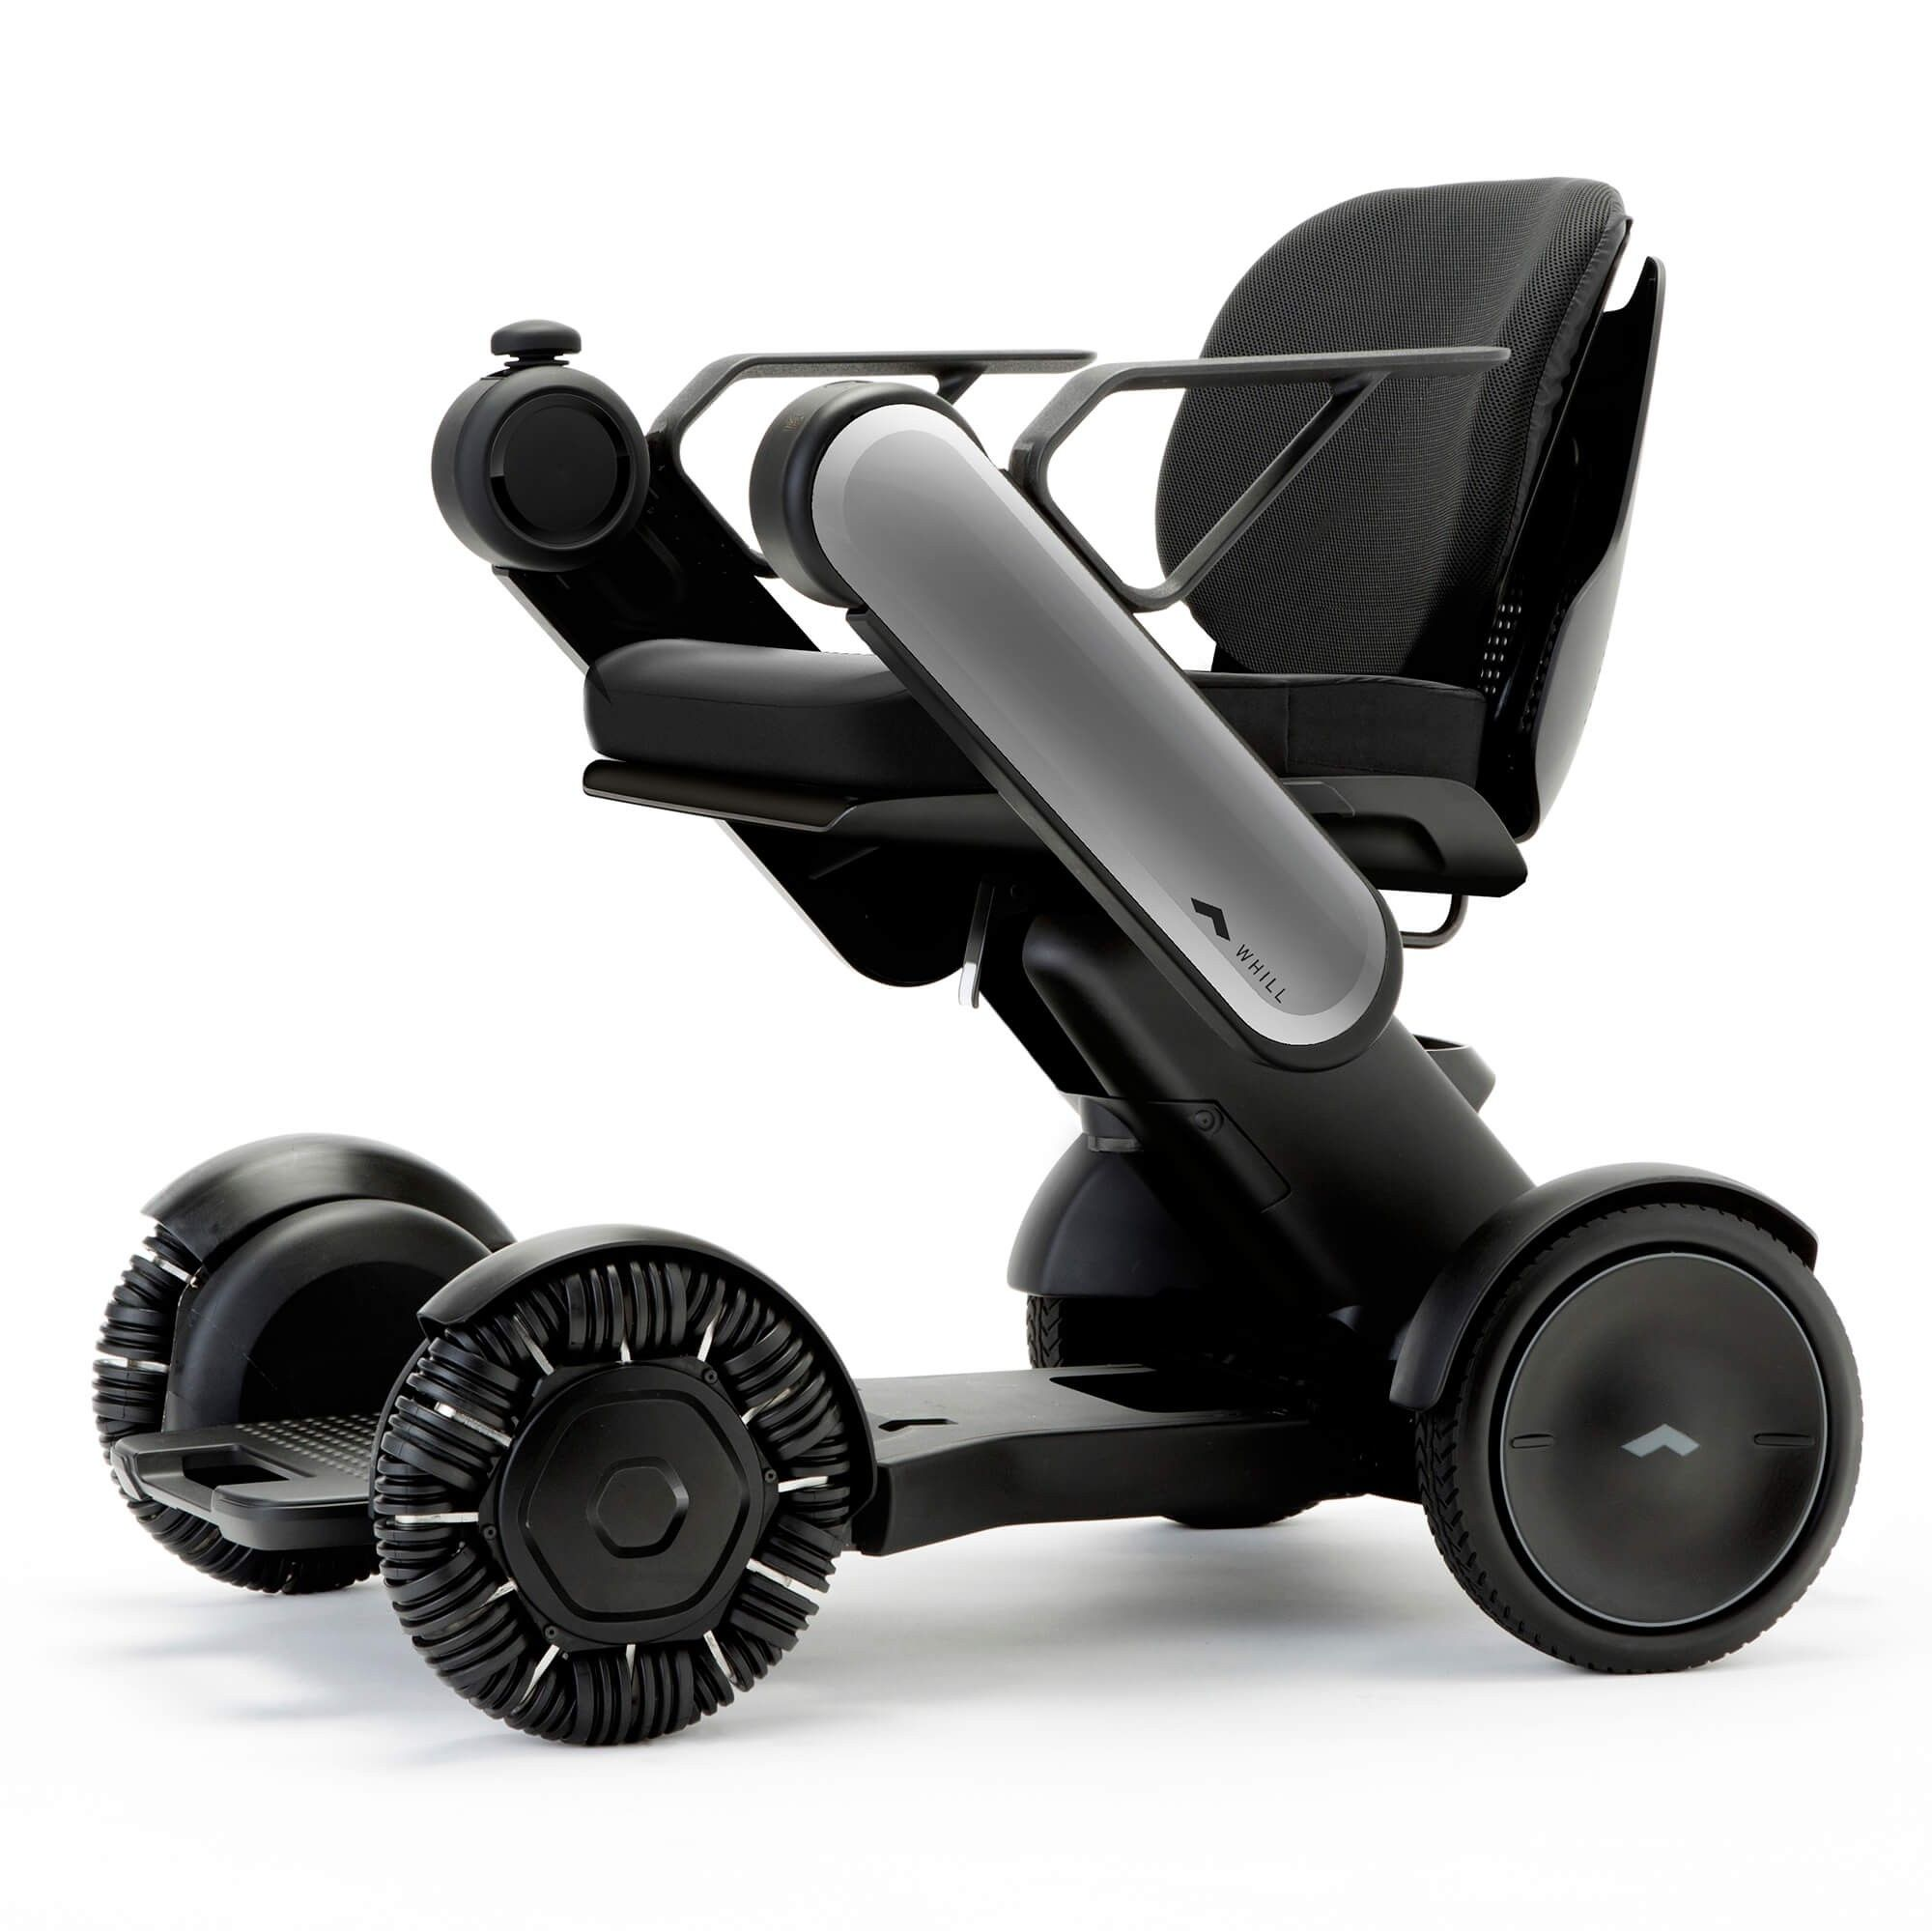 Whill Powered wheelchair, Design, Electric cars